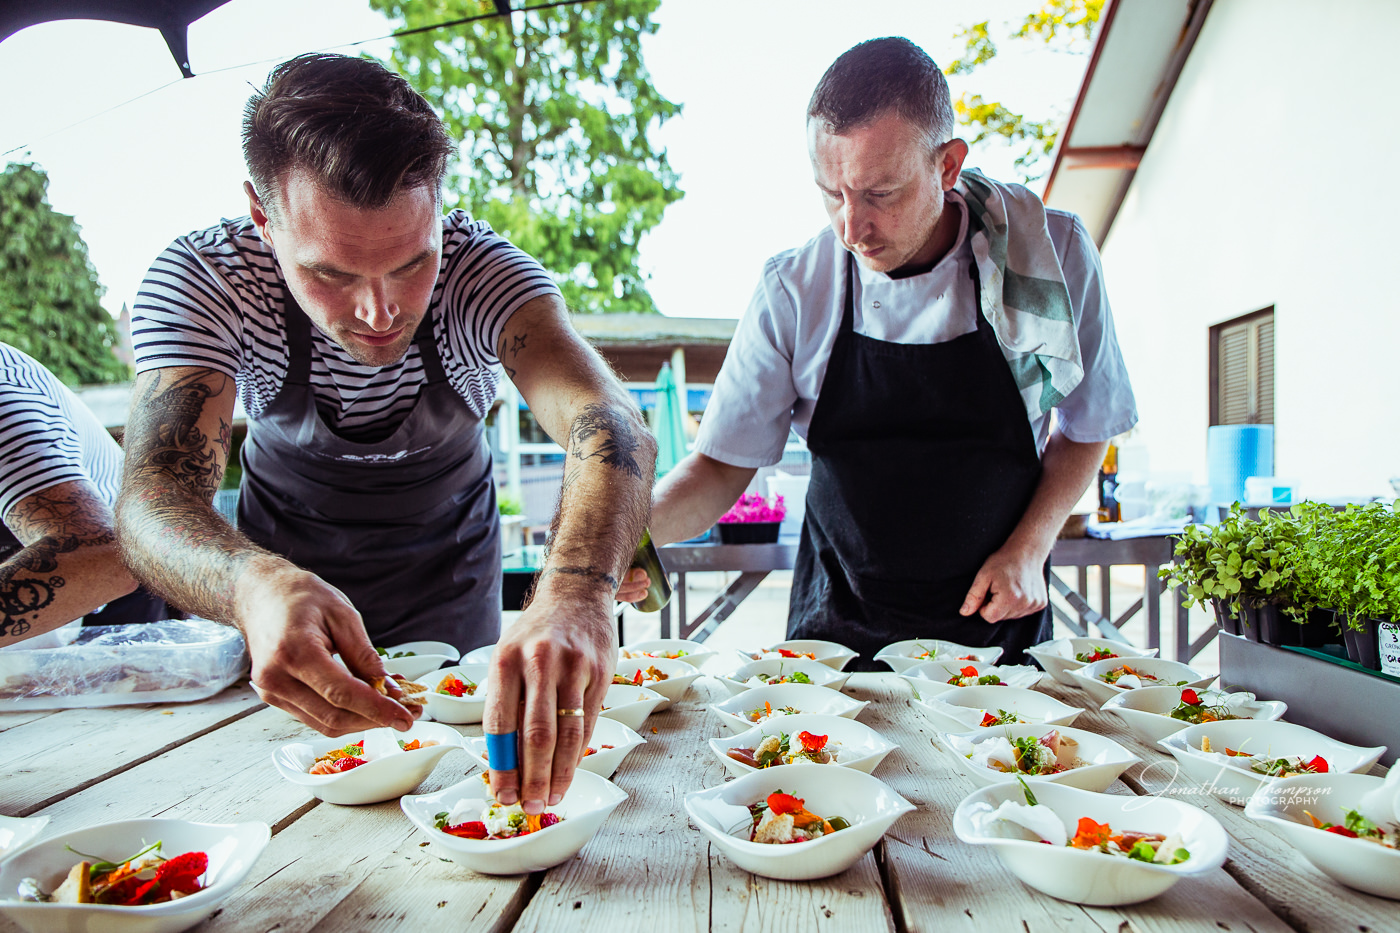 Male chefs are carfully plating up a salad in white bowls in an outdoor venue at Chester Zoo